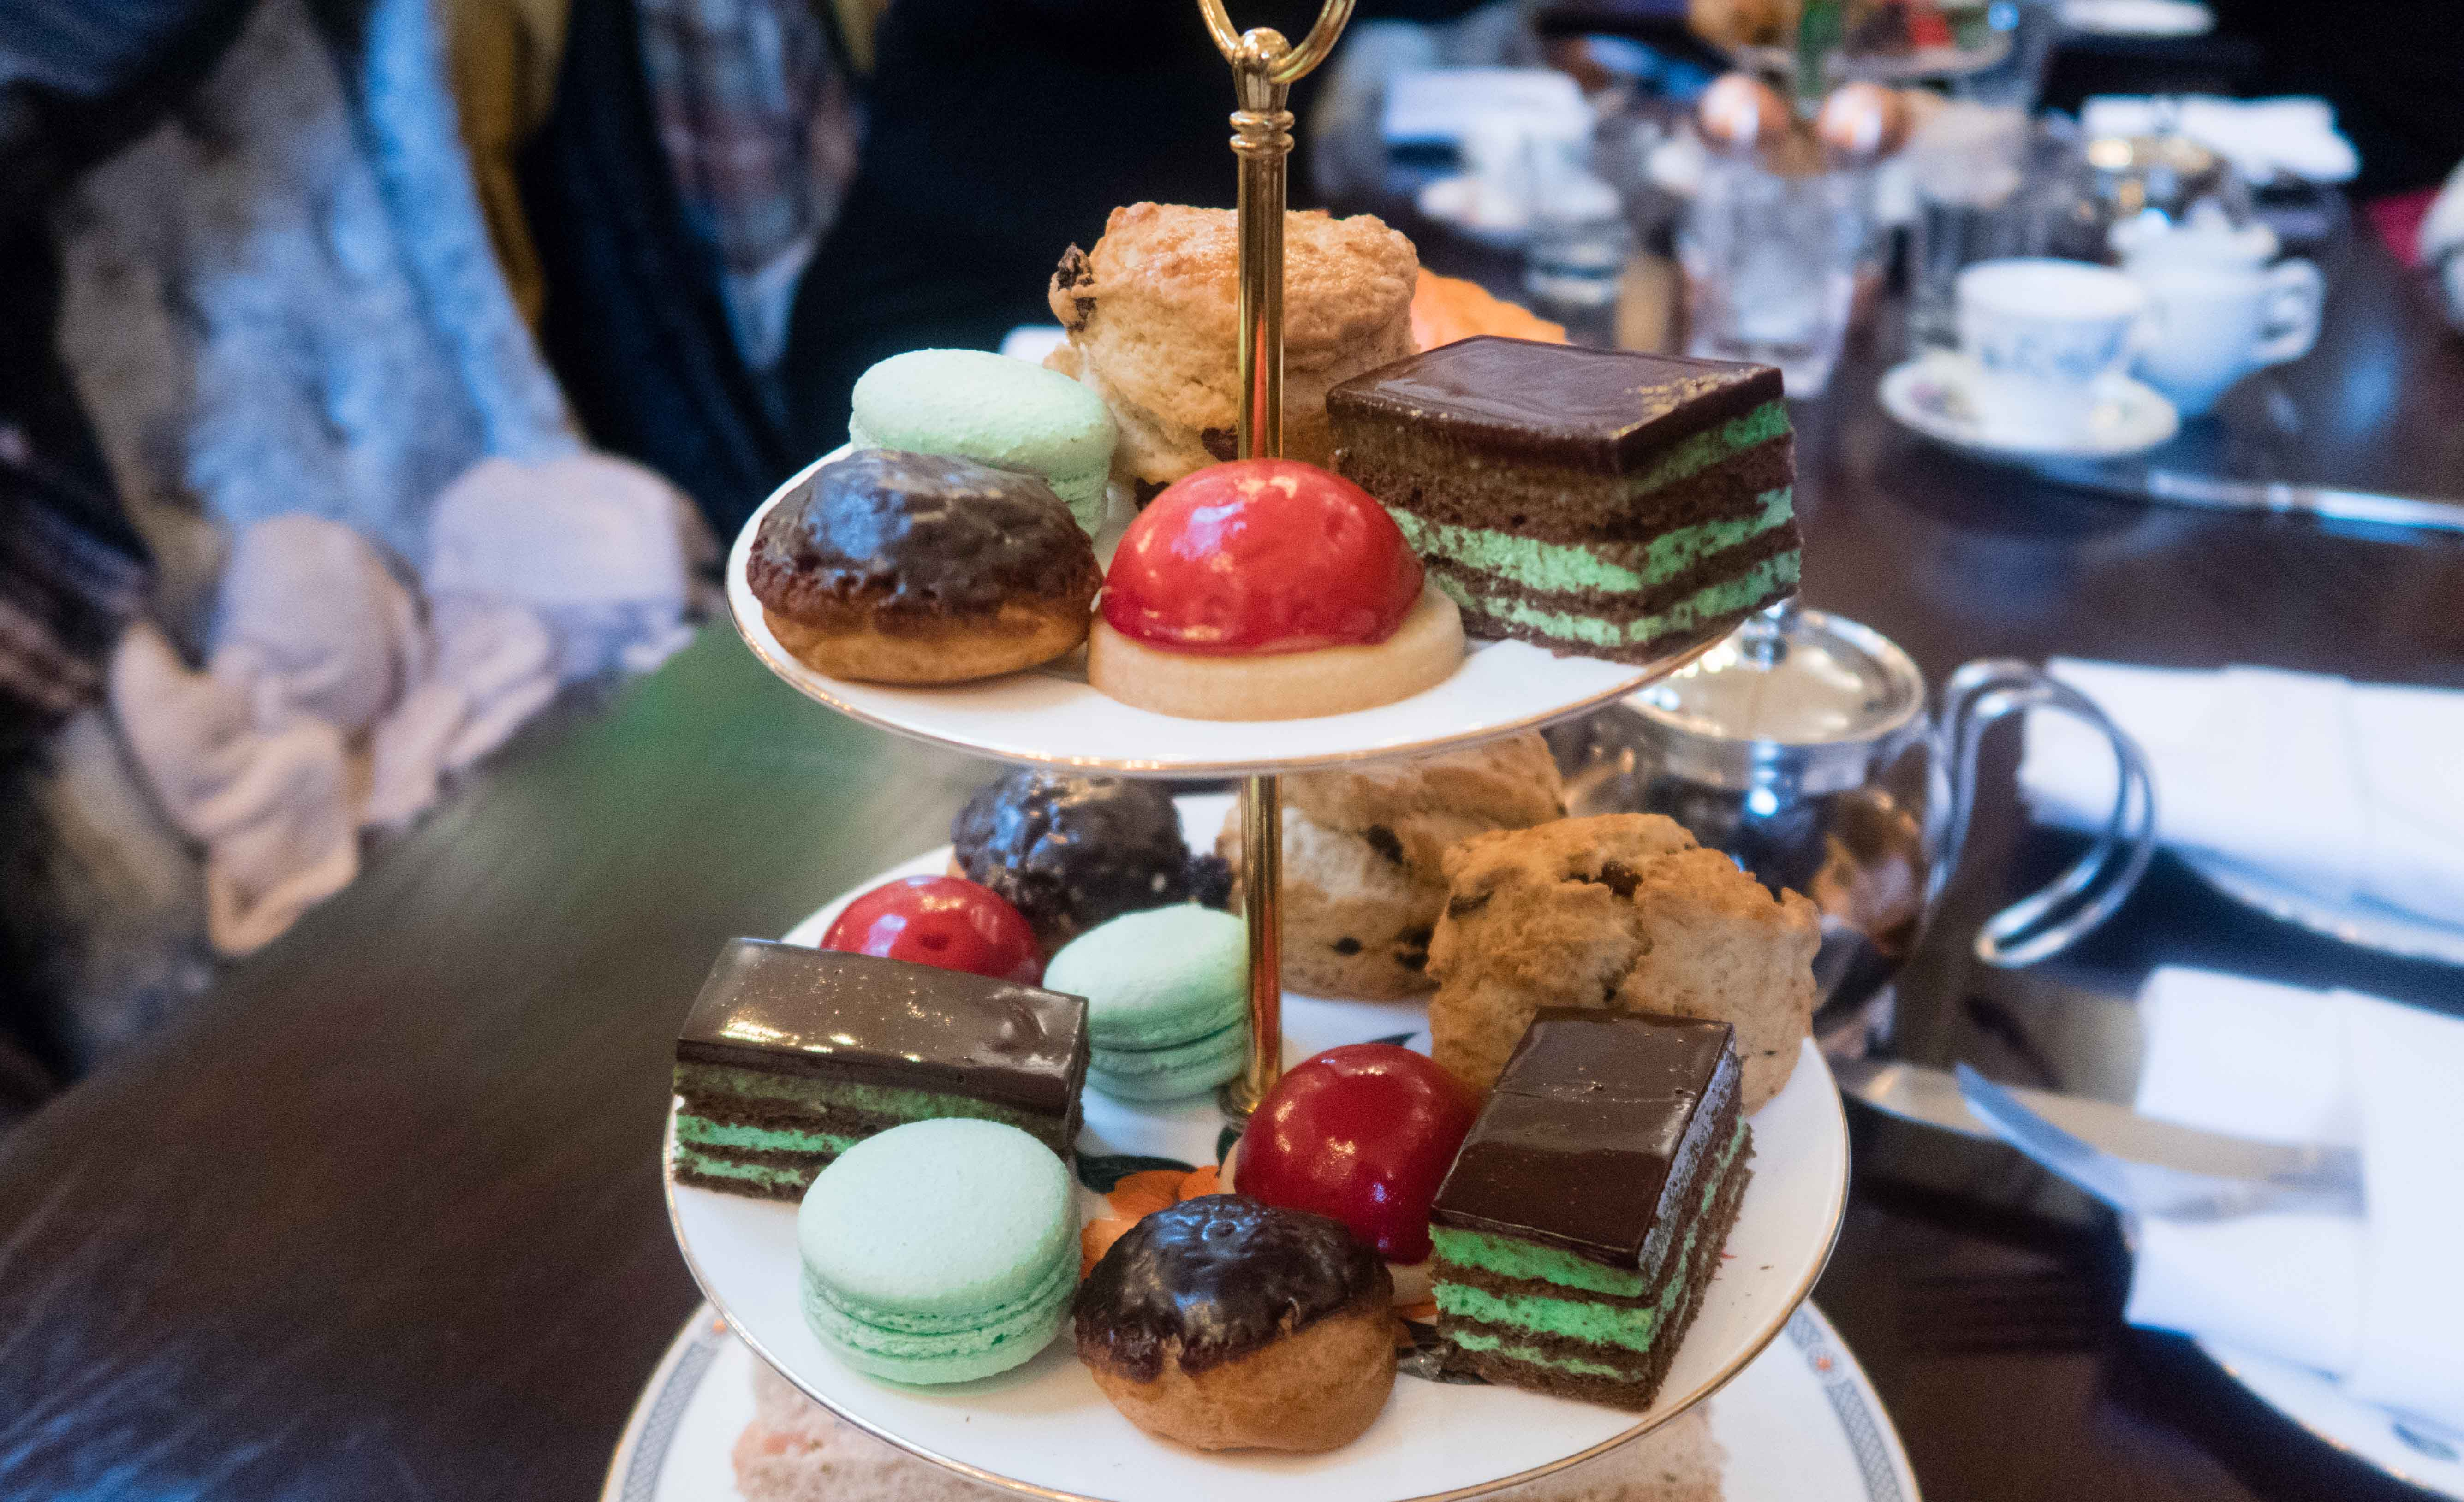 The cakes and scones from the Traditional Afternoon Tea